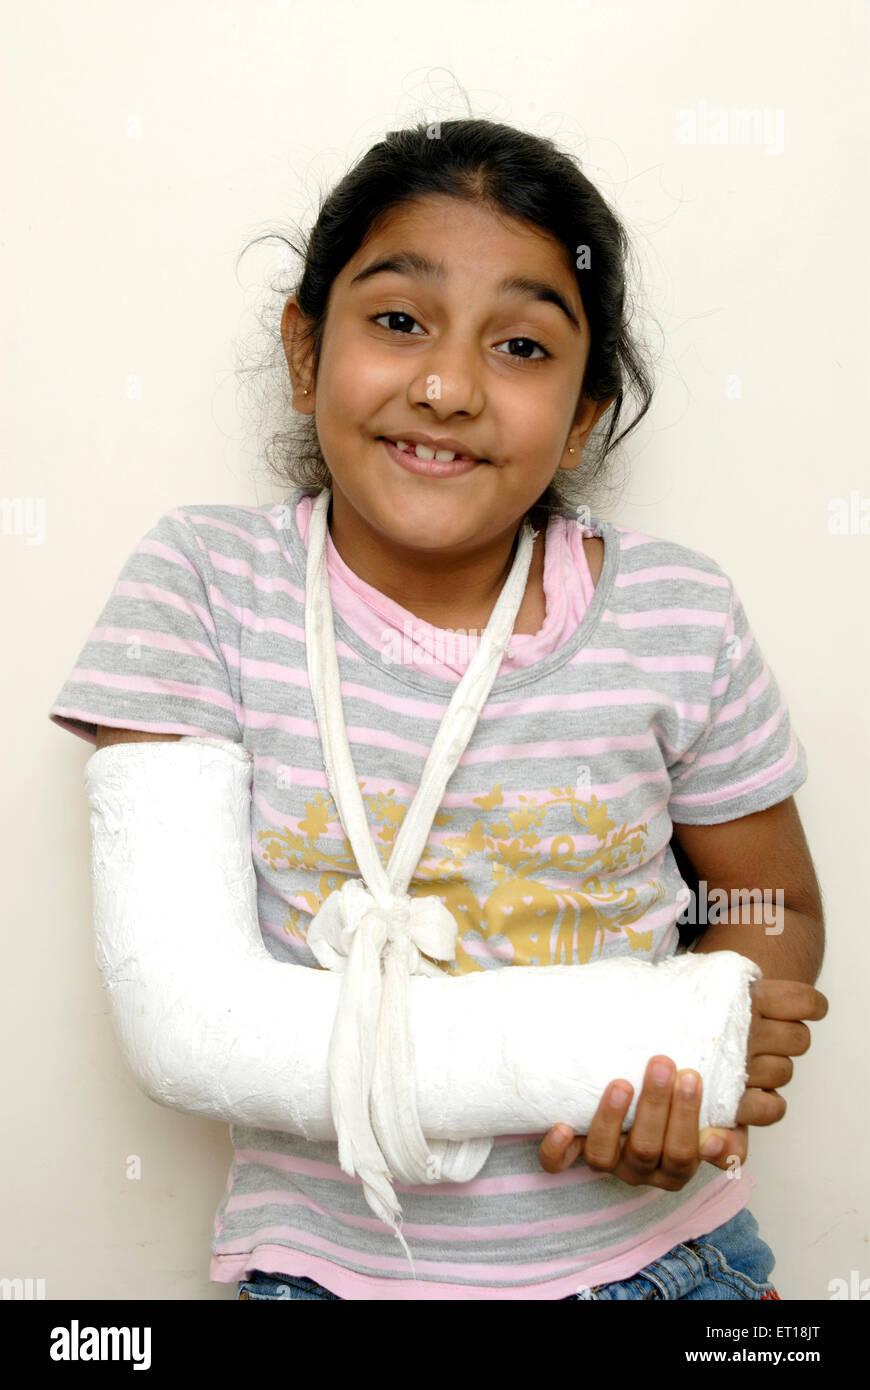 Young girl child fracture hand plaster - Model Release # 152 - Stock Image